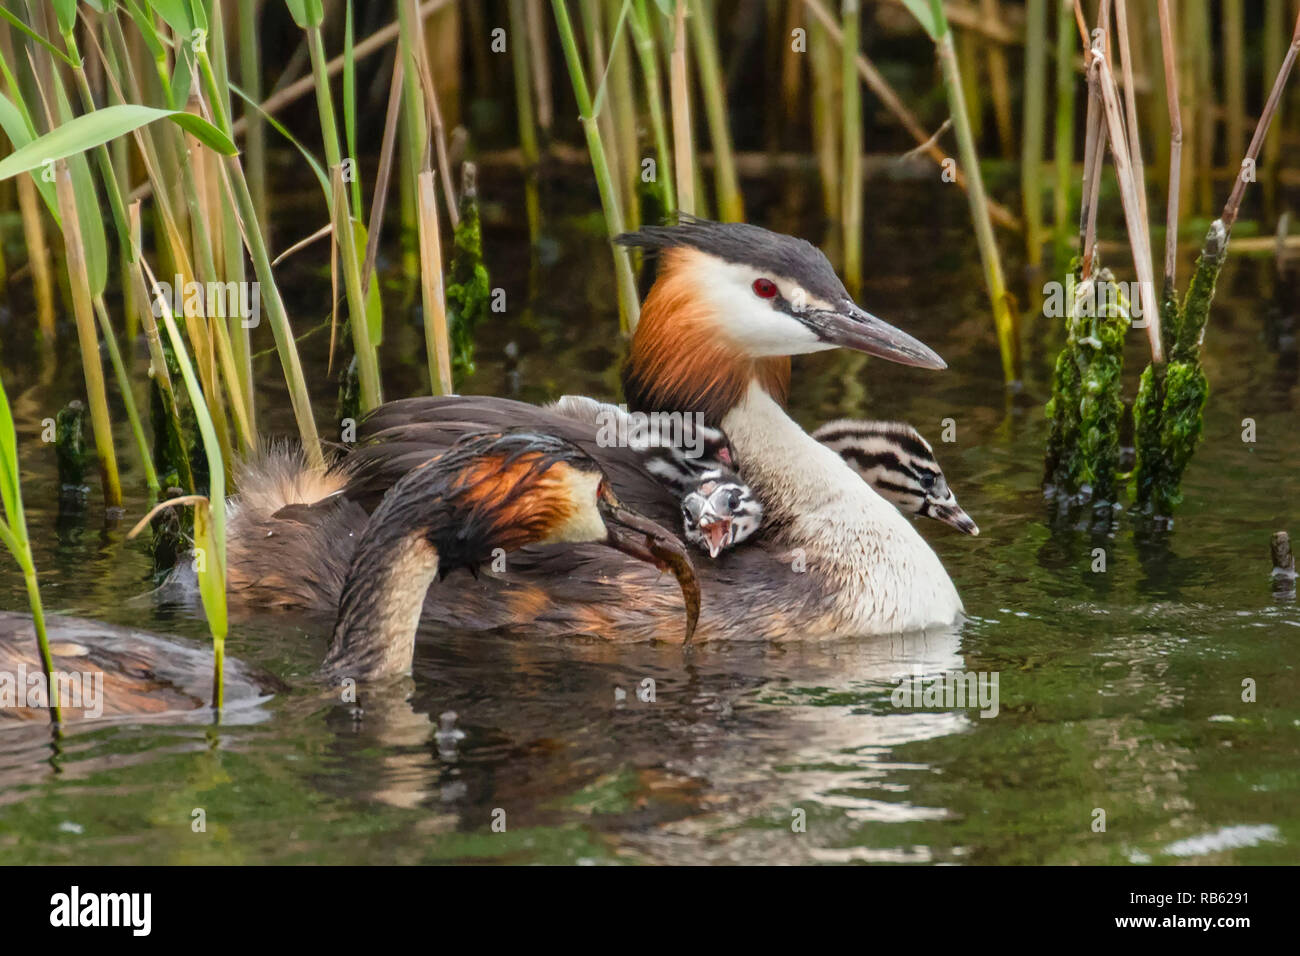 Great crested grebes (Podiceps cristatus) feeding young in IJ river. Amsterdam, The Netherlands. - Stock Image